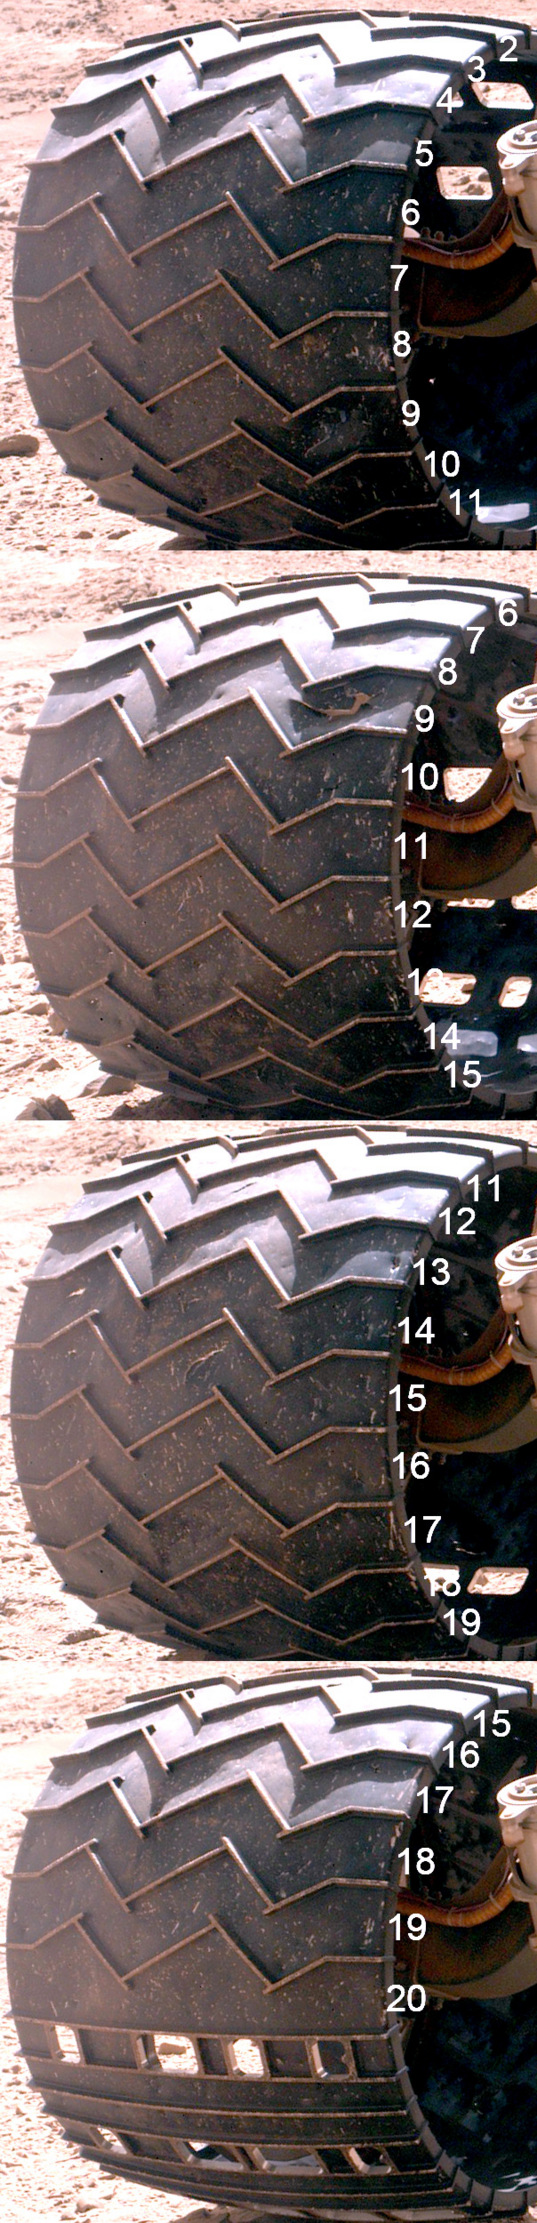 Curiosity wheel survey, sol 513: Right middle wheel